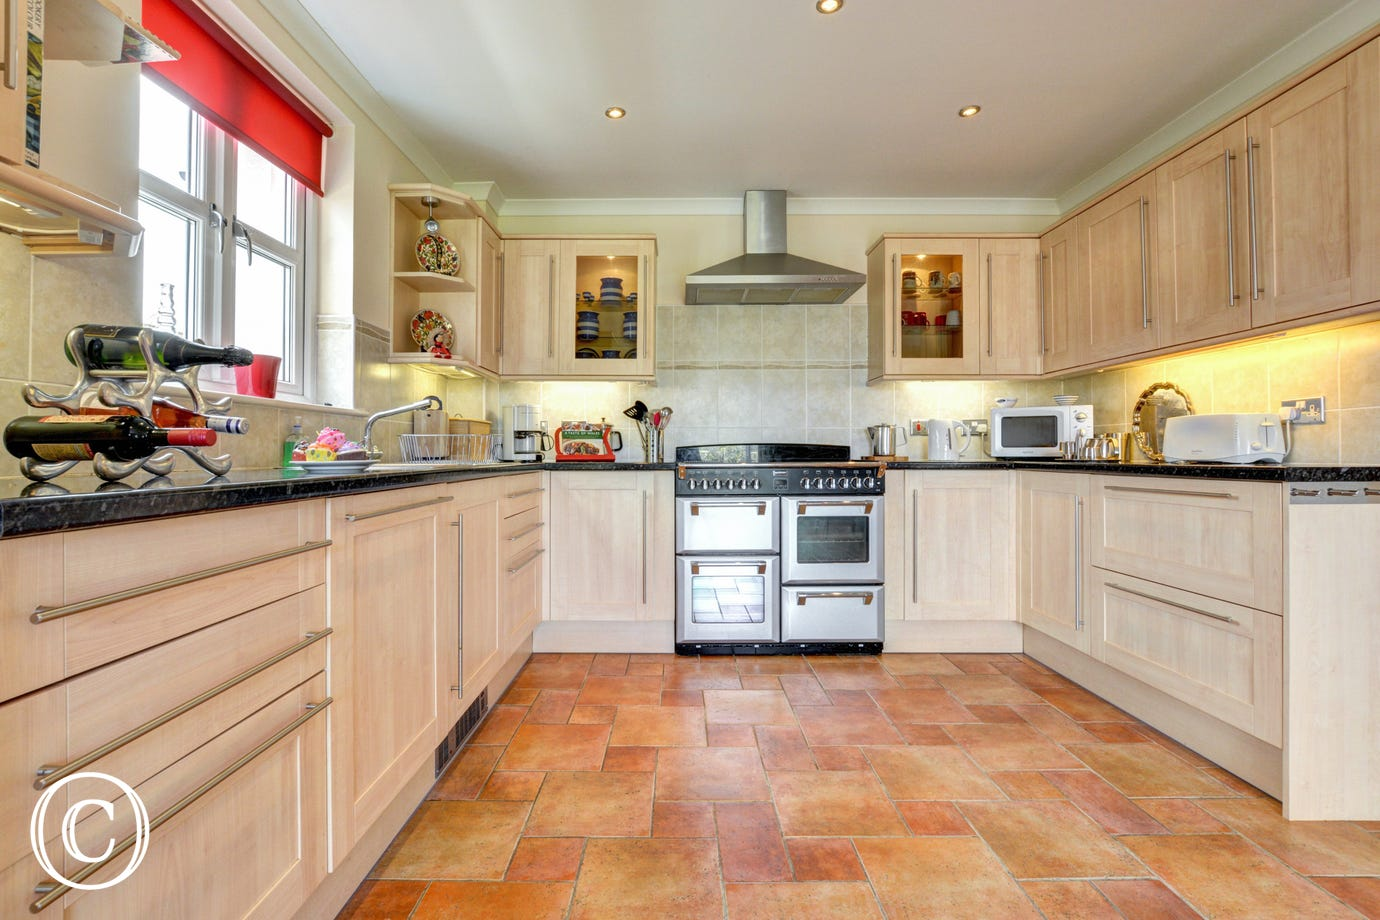 A well equipped spacious kitchen area in this self catering property